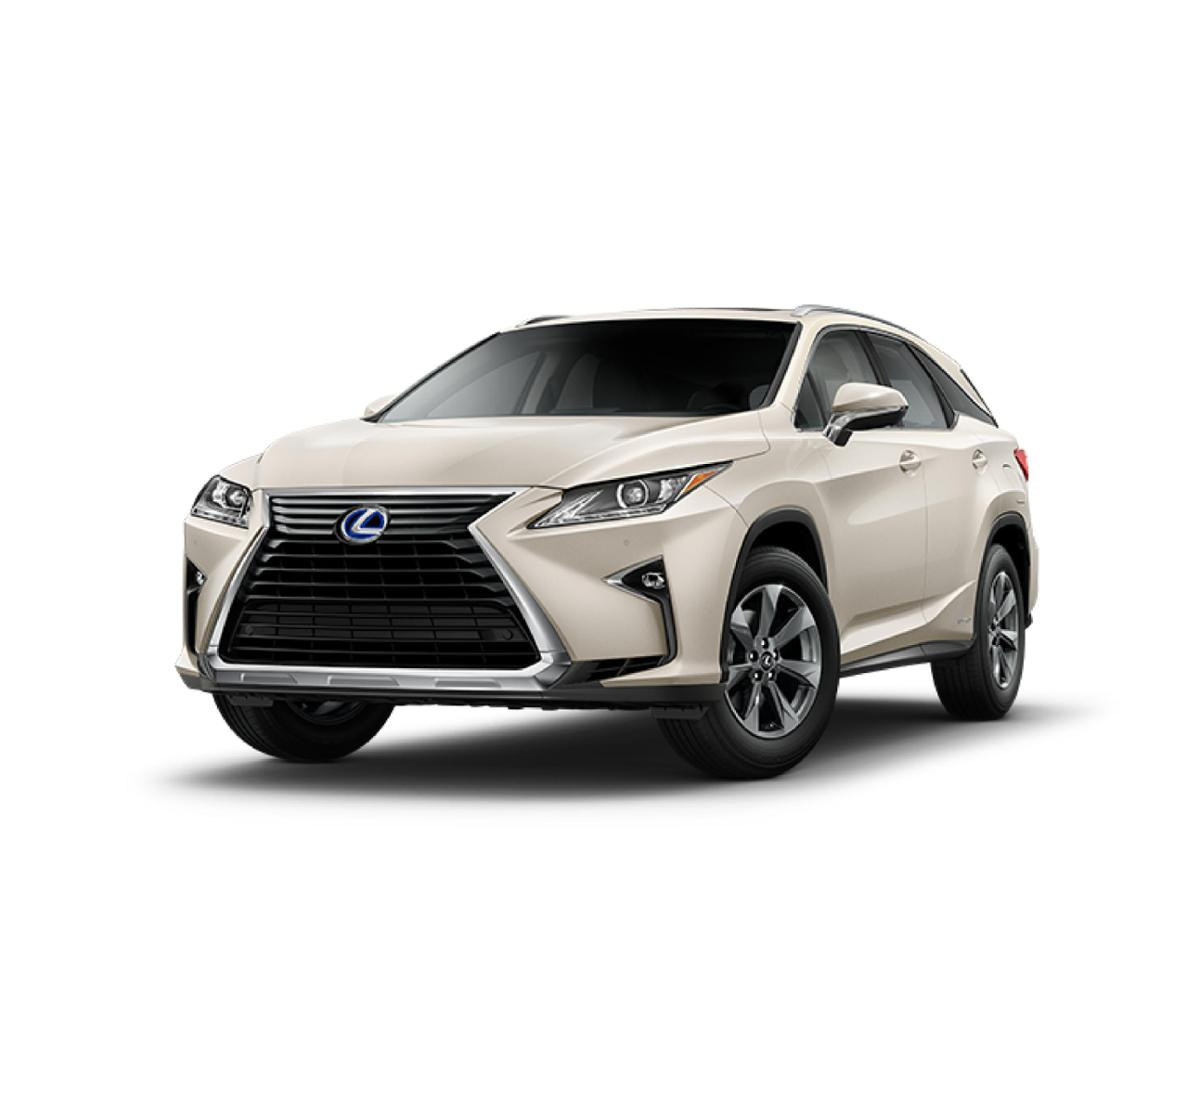 2018 Lexus RX 450hL Vehicle Photo in Lakeway, TX 78734